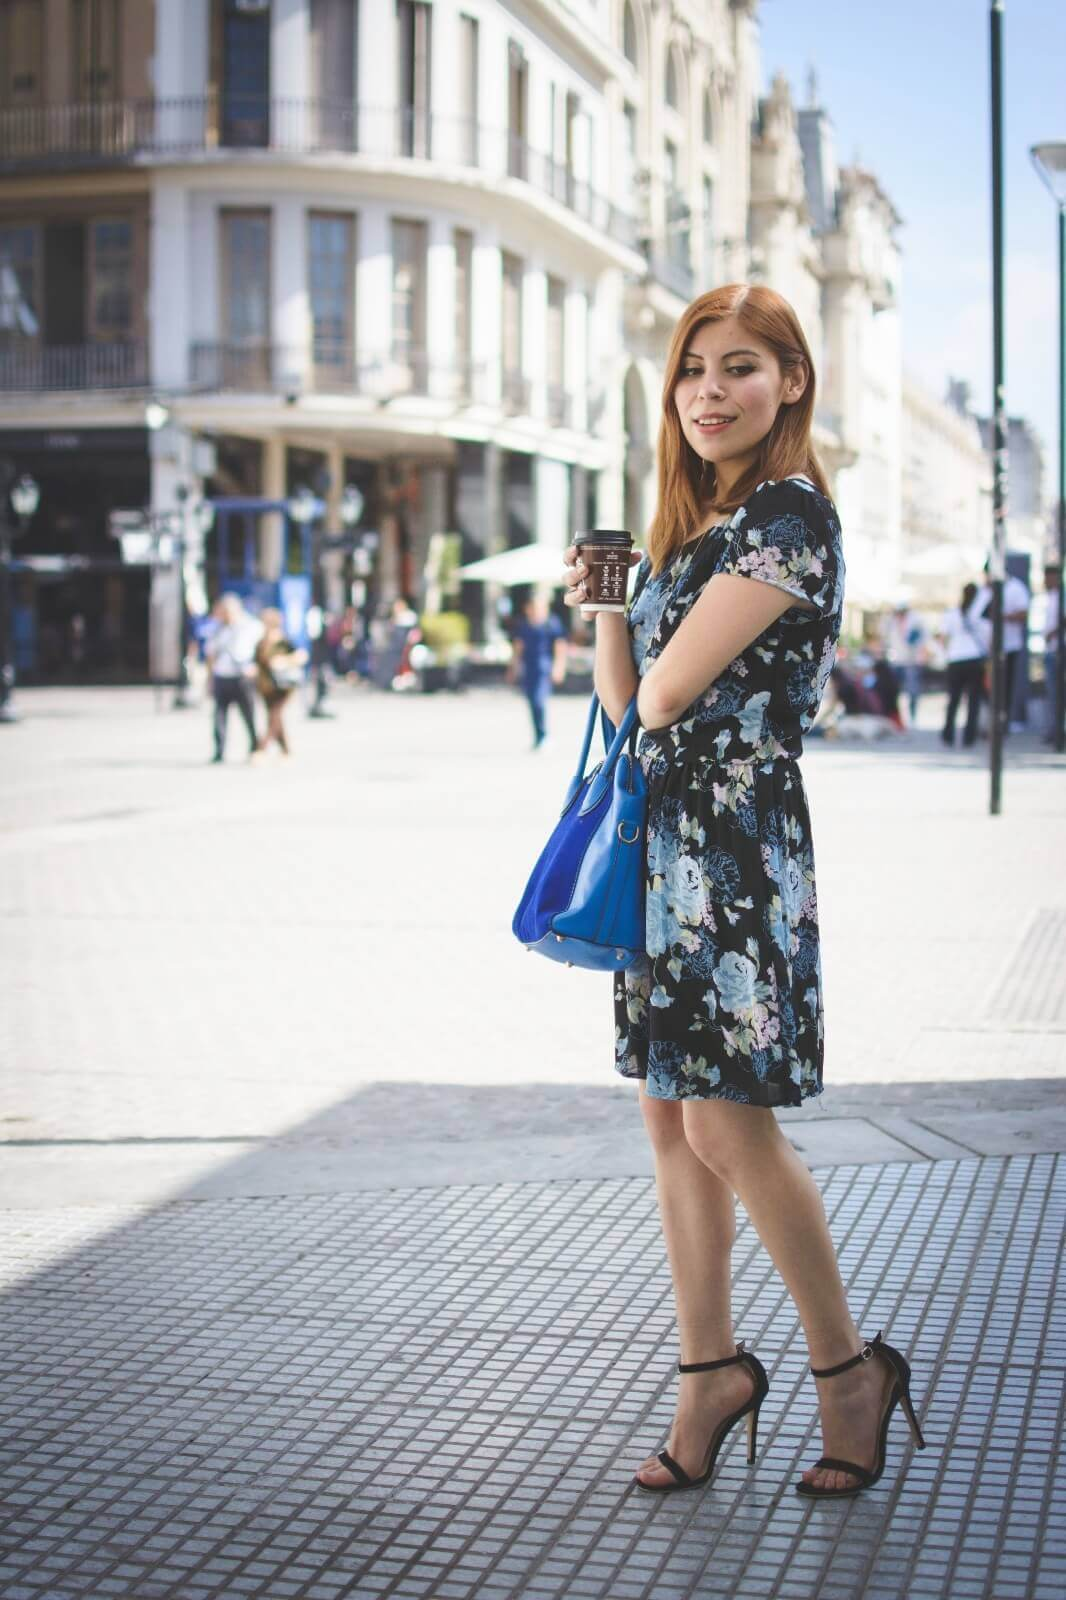 gamiss-black-strappy-sandals-blue-floral-dress-rosegal-cobalt-blue-tote-bag-deborah-ferrero-style-by-deb12